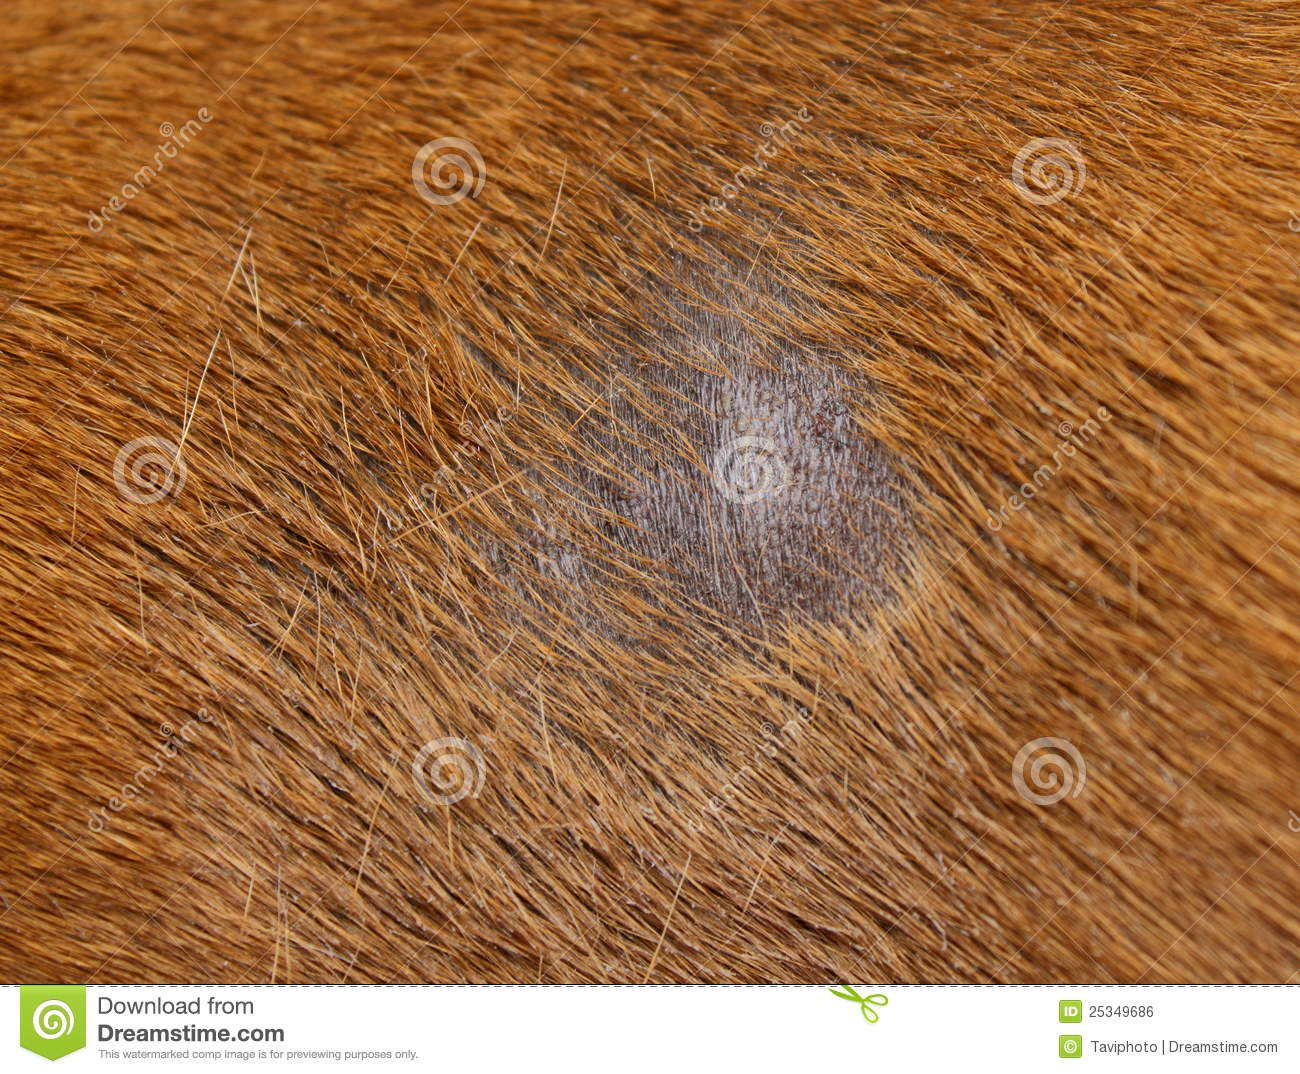 Skin Yeast Infections In Dogs Pictures